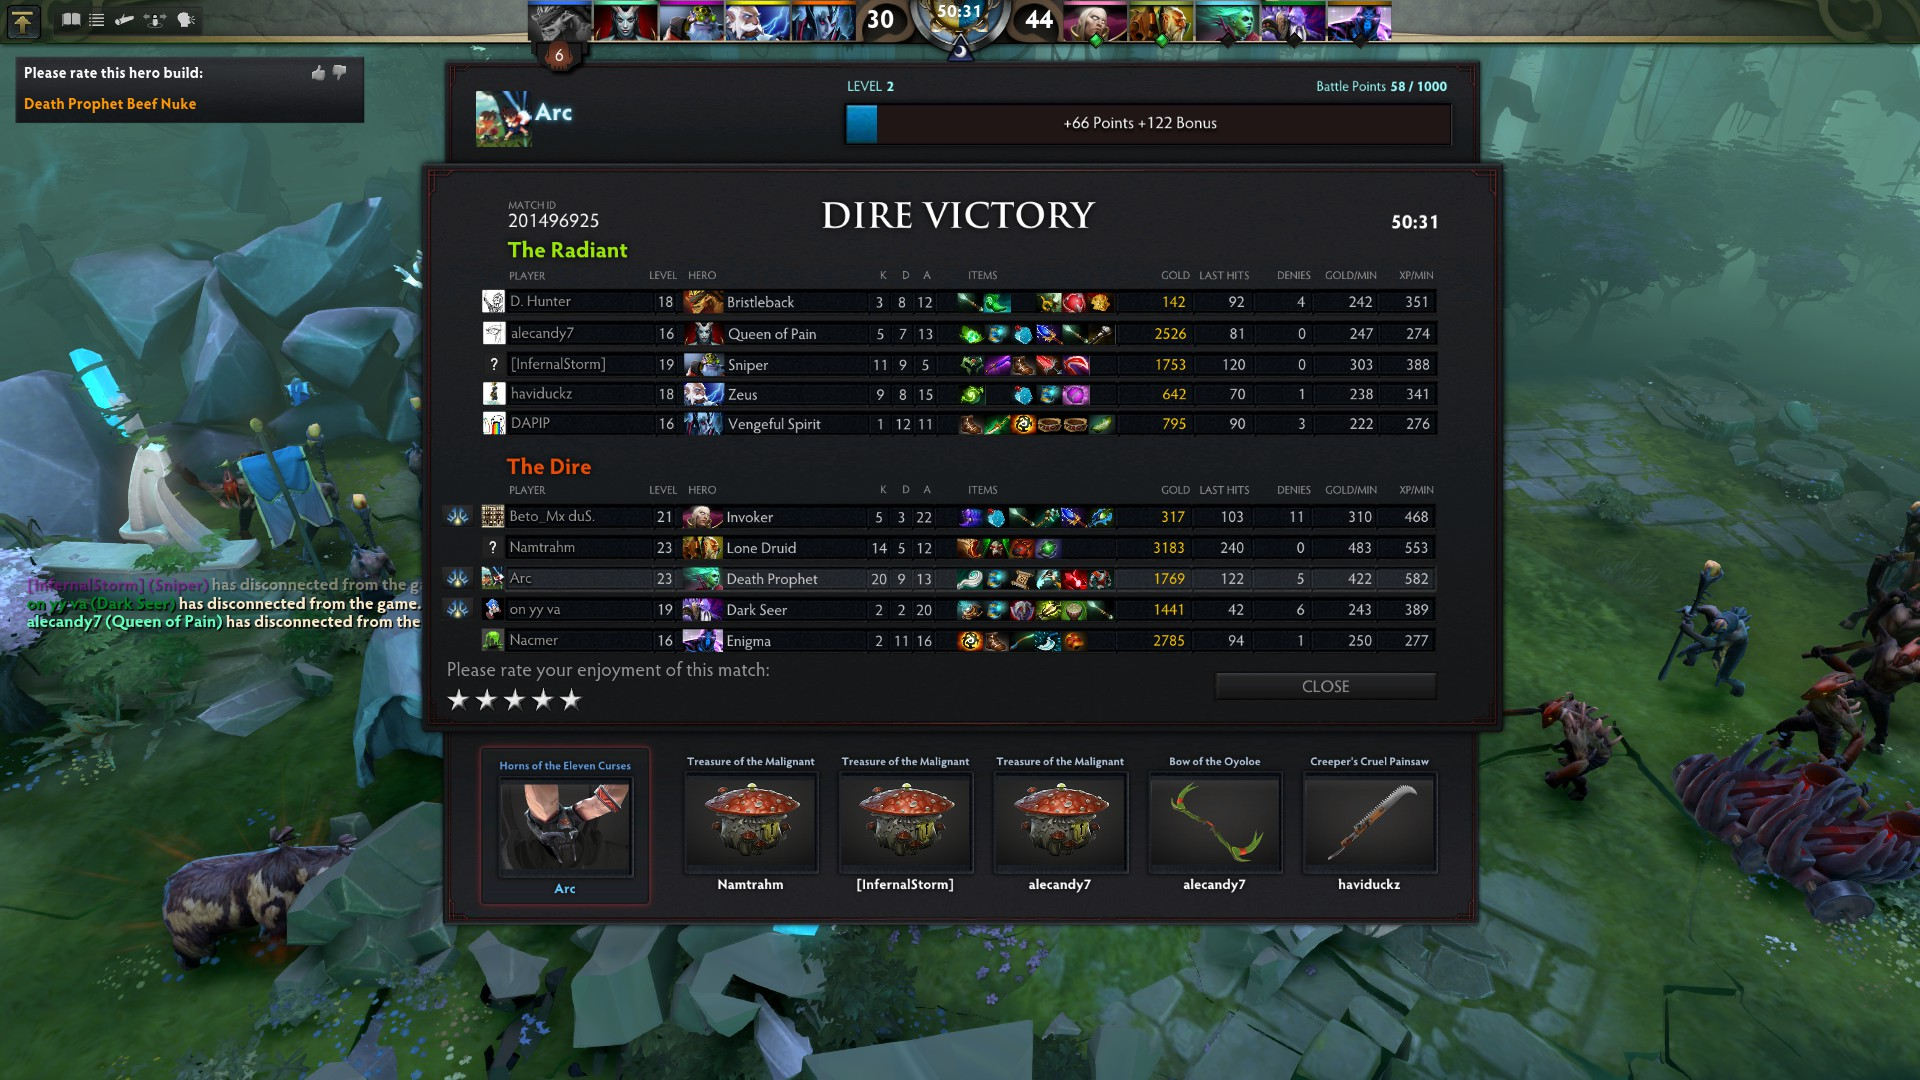 warc games game what patch guide concepts heroes heres theres 705 previous current more guides these lini actually into built torte made 704 member community depending champs youre used suggestions gives thanks volvo that primer help written 700 dota since broad with outdated read